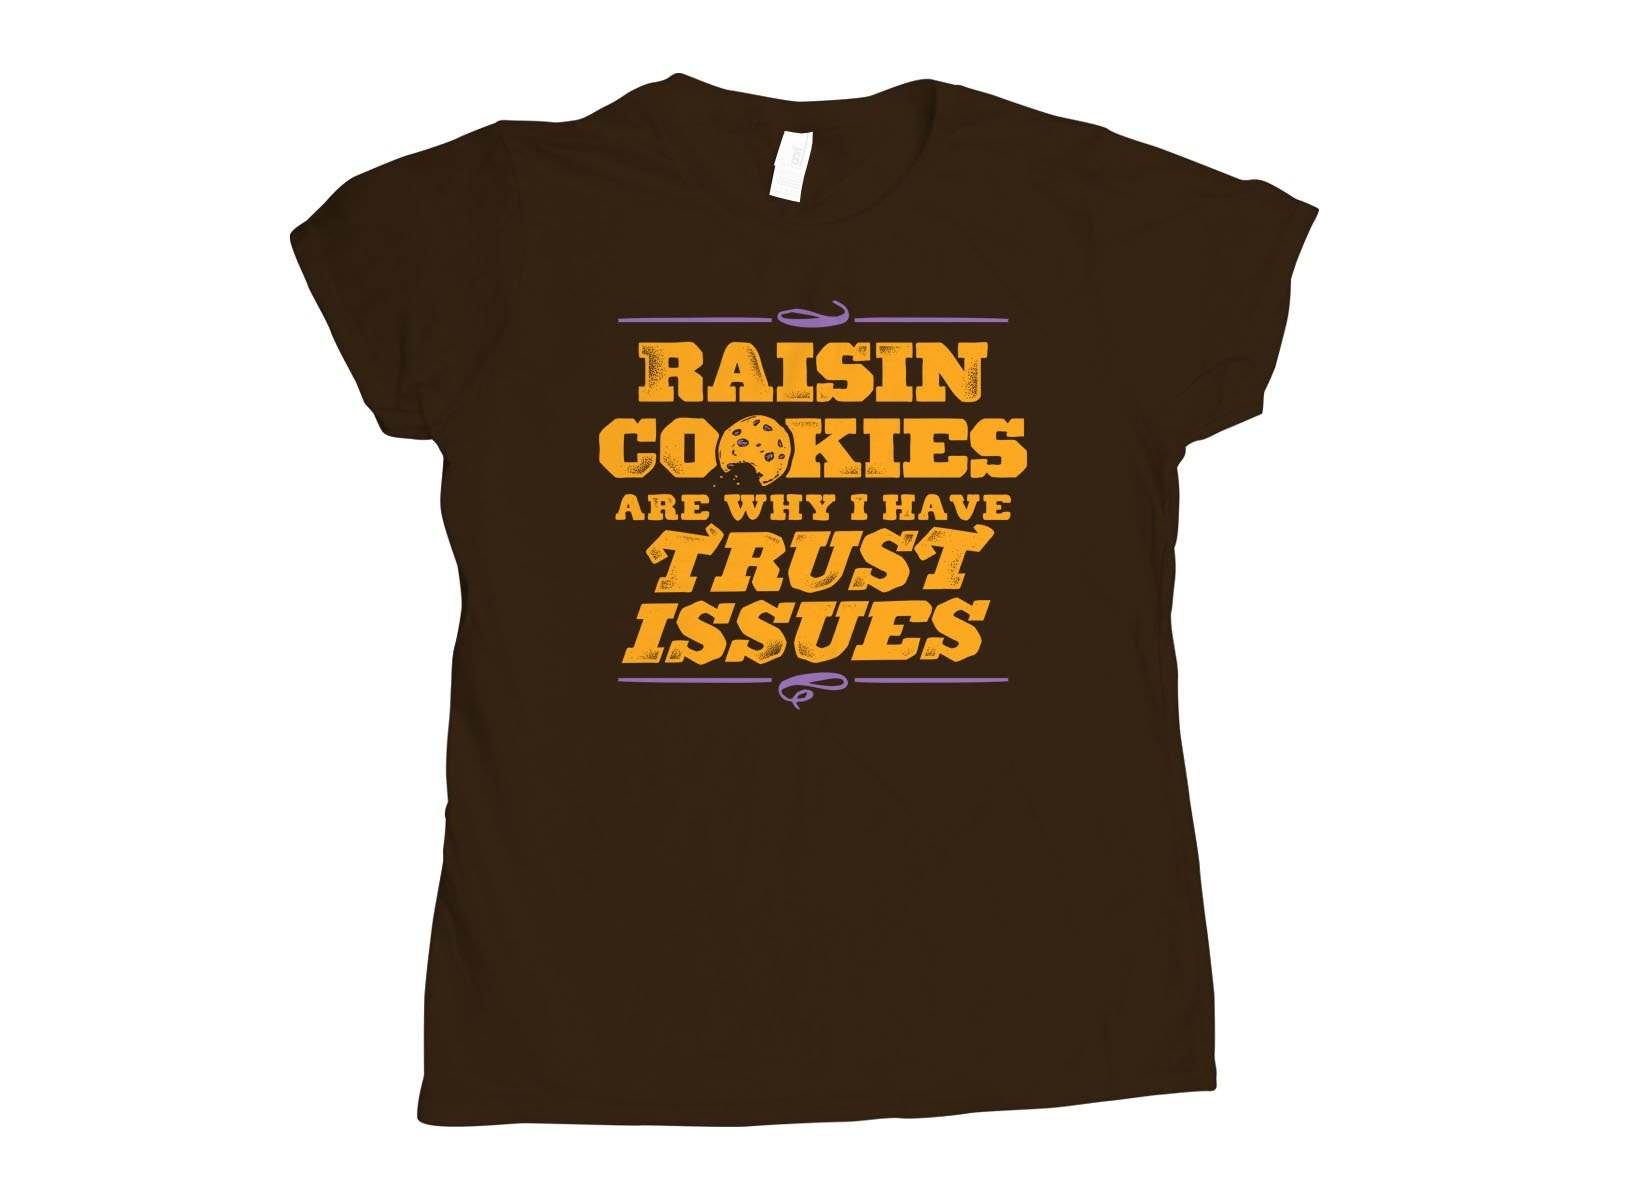 Raisin Cookies Are Why I Have Trust Issues on Womens T-Shirt